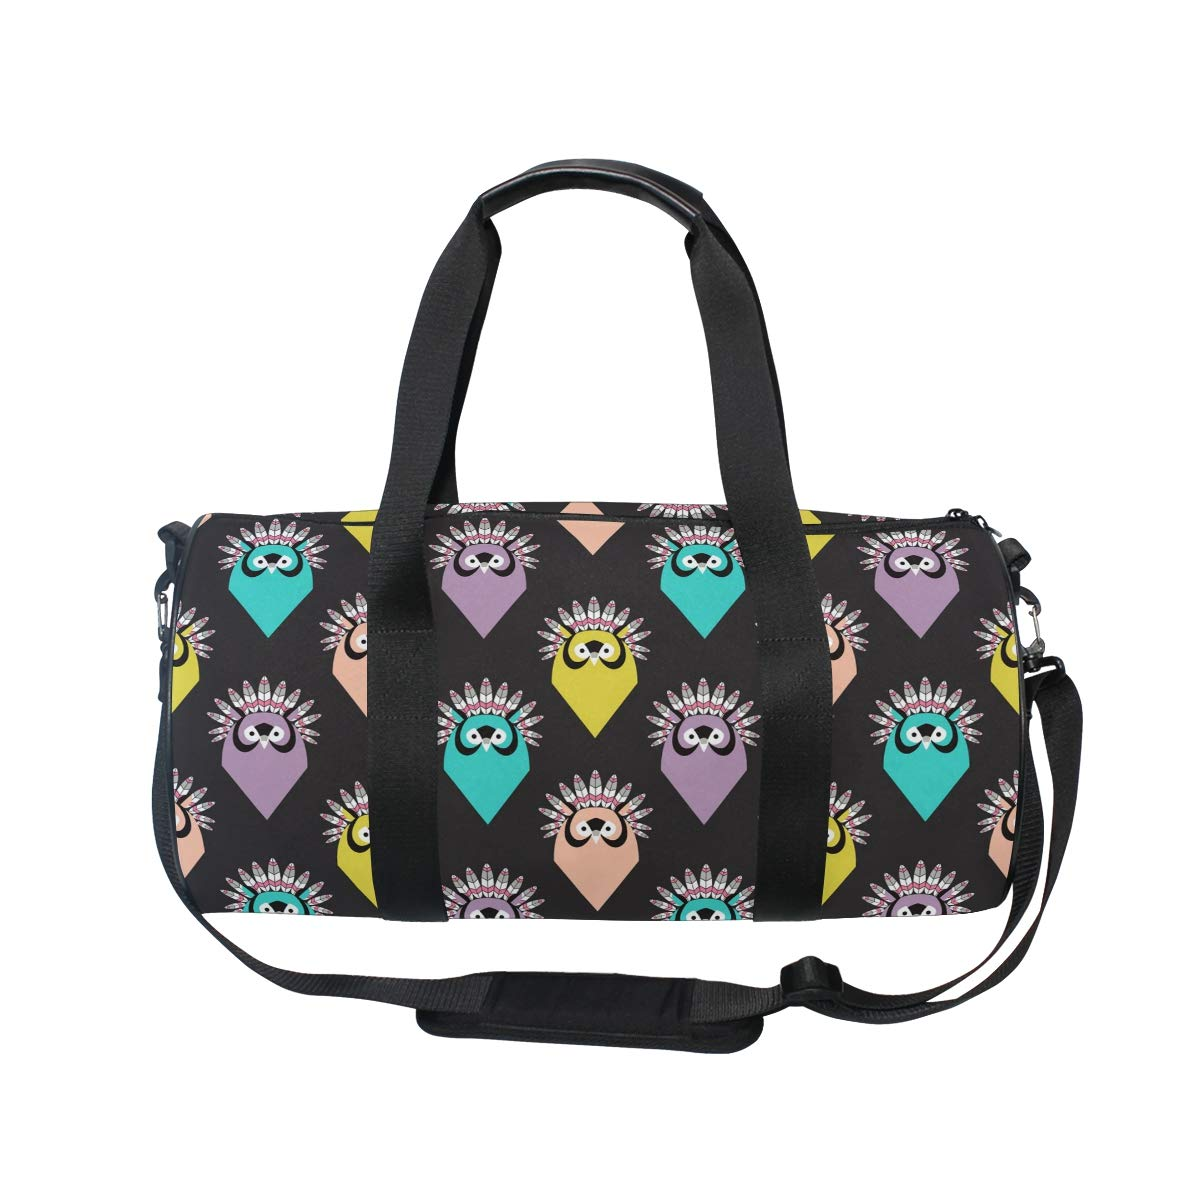 WIHVE Gym Duffel Bag Cute Owls With Feathers Sports Lightweight Canvas Travel Luggage Bag